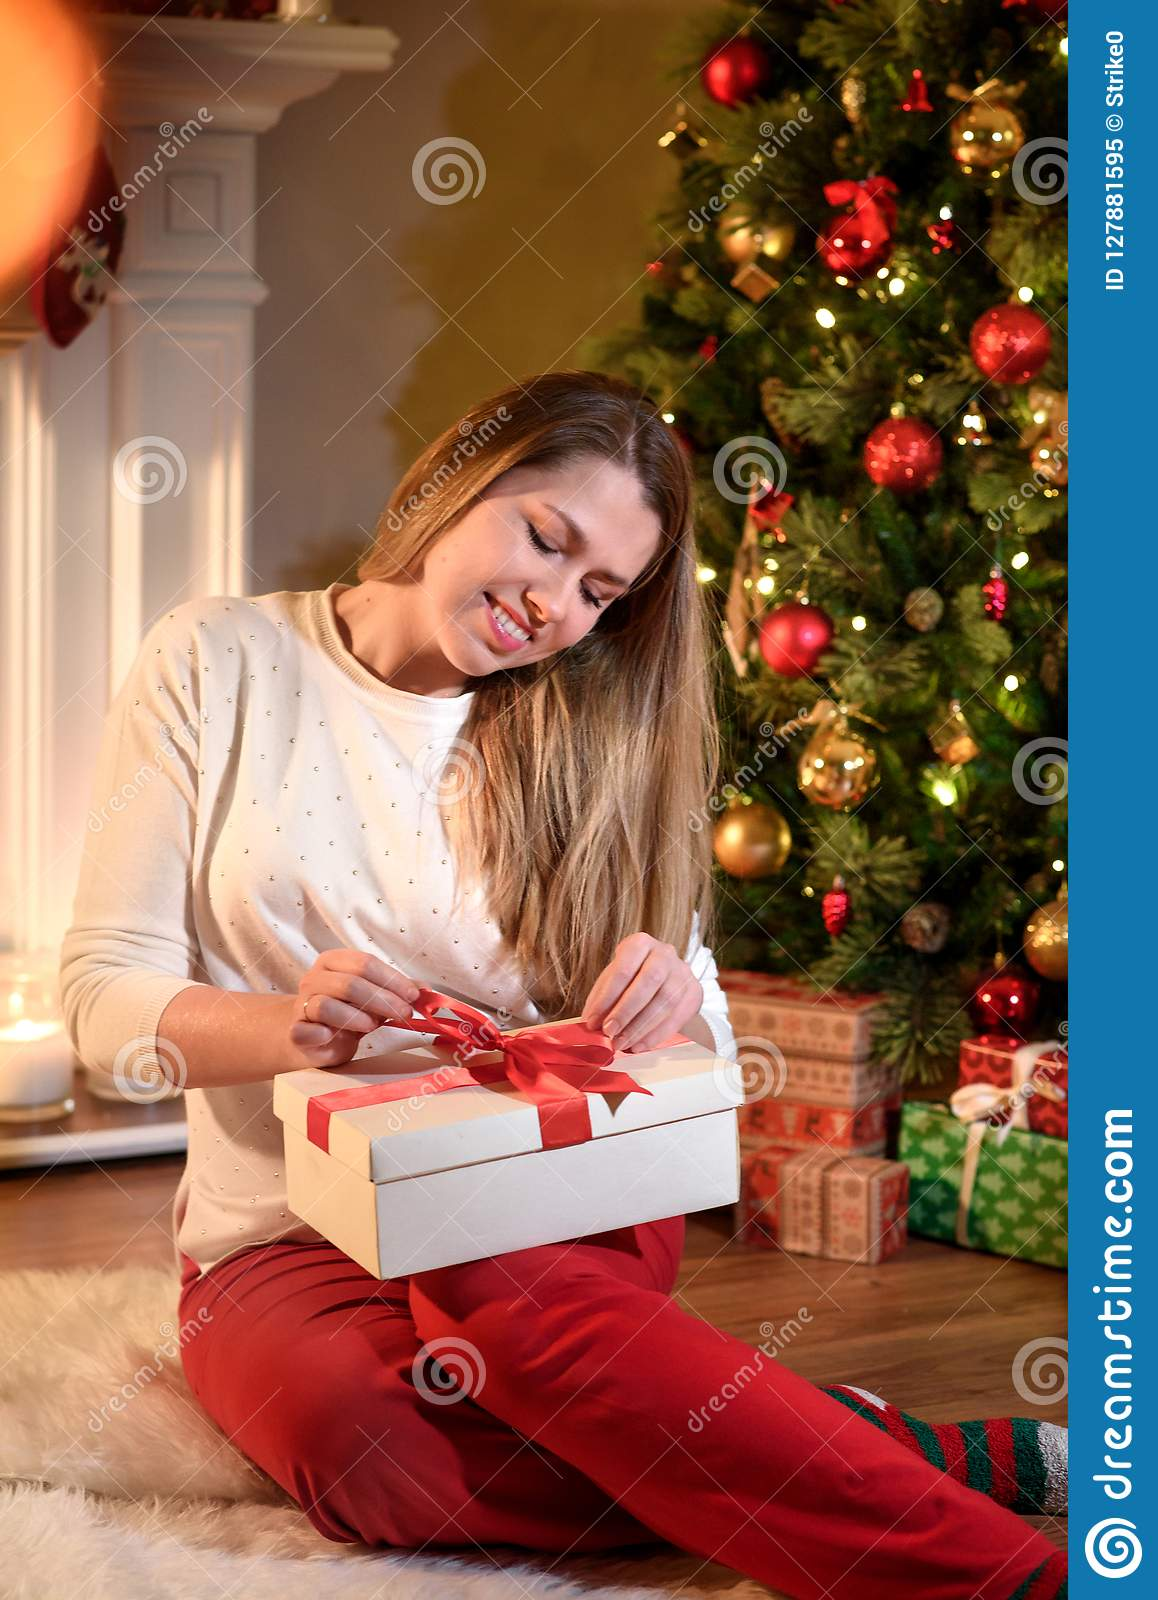 Girl fixing a ribbon on new year gift box smiling